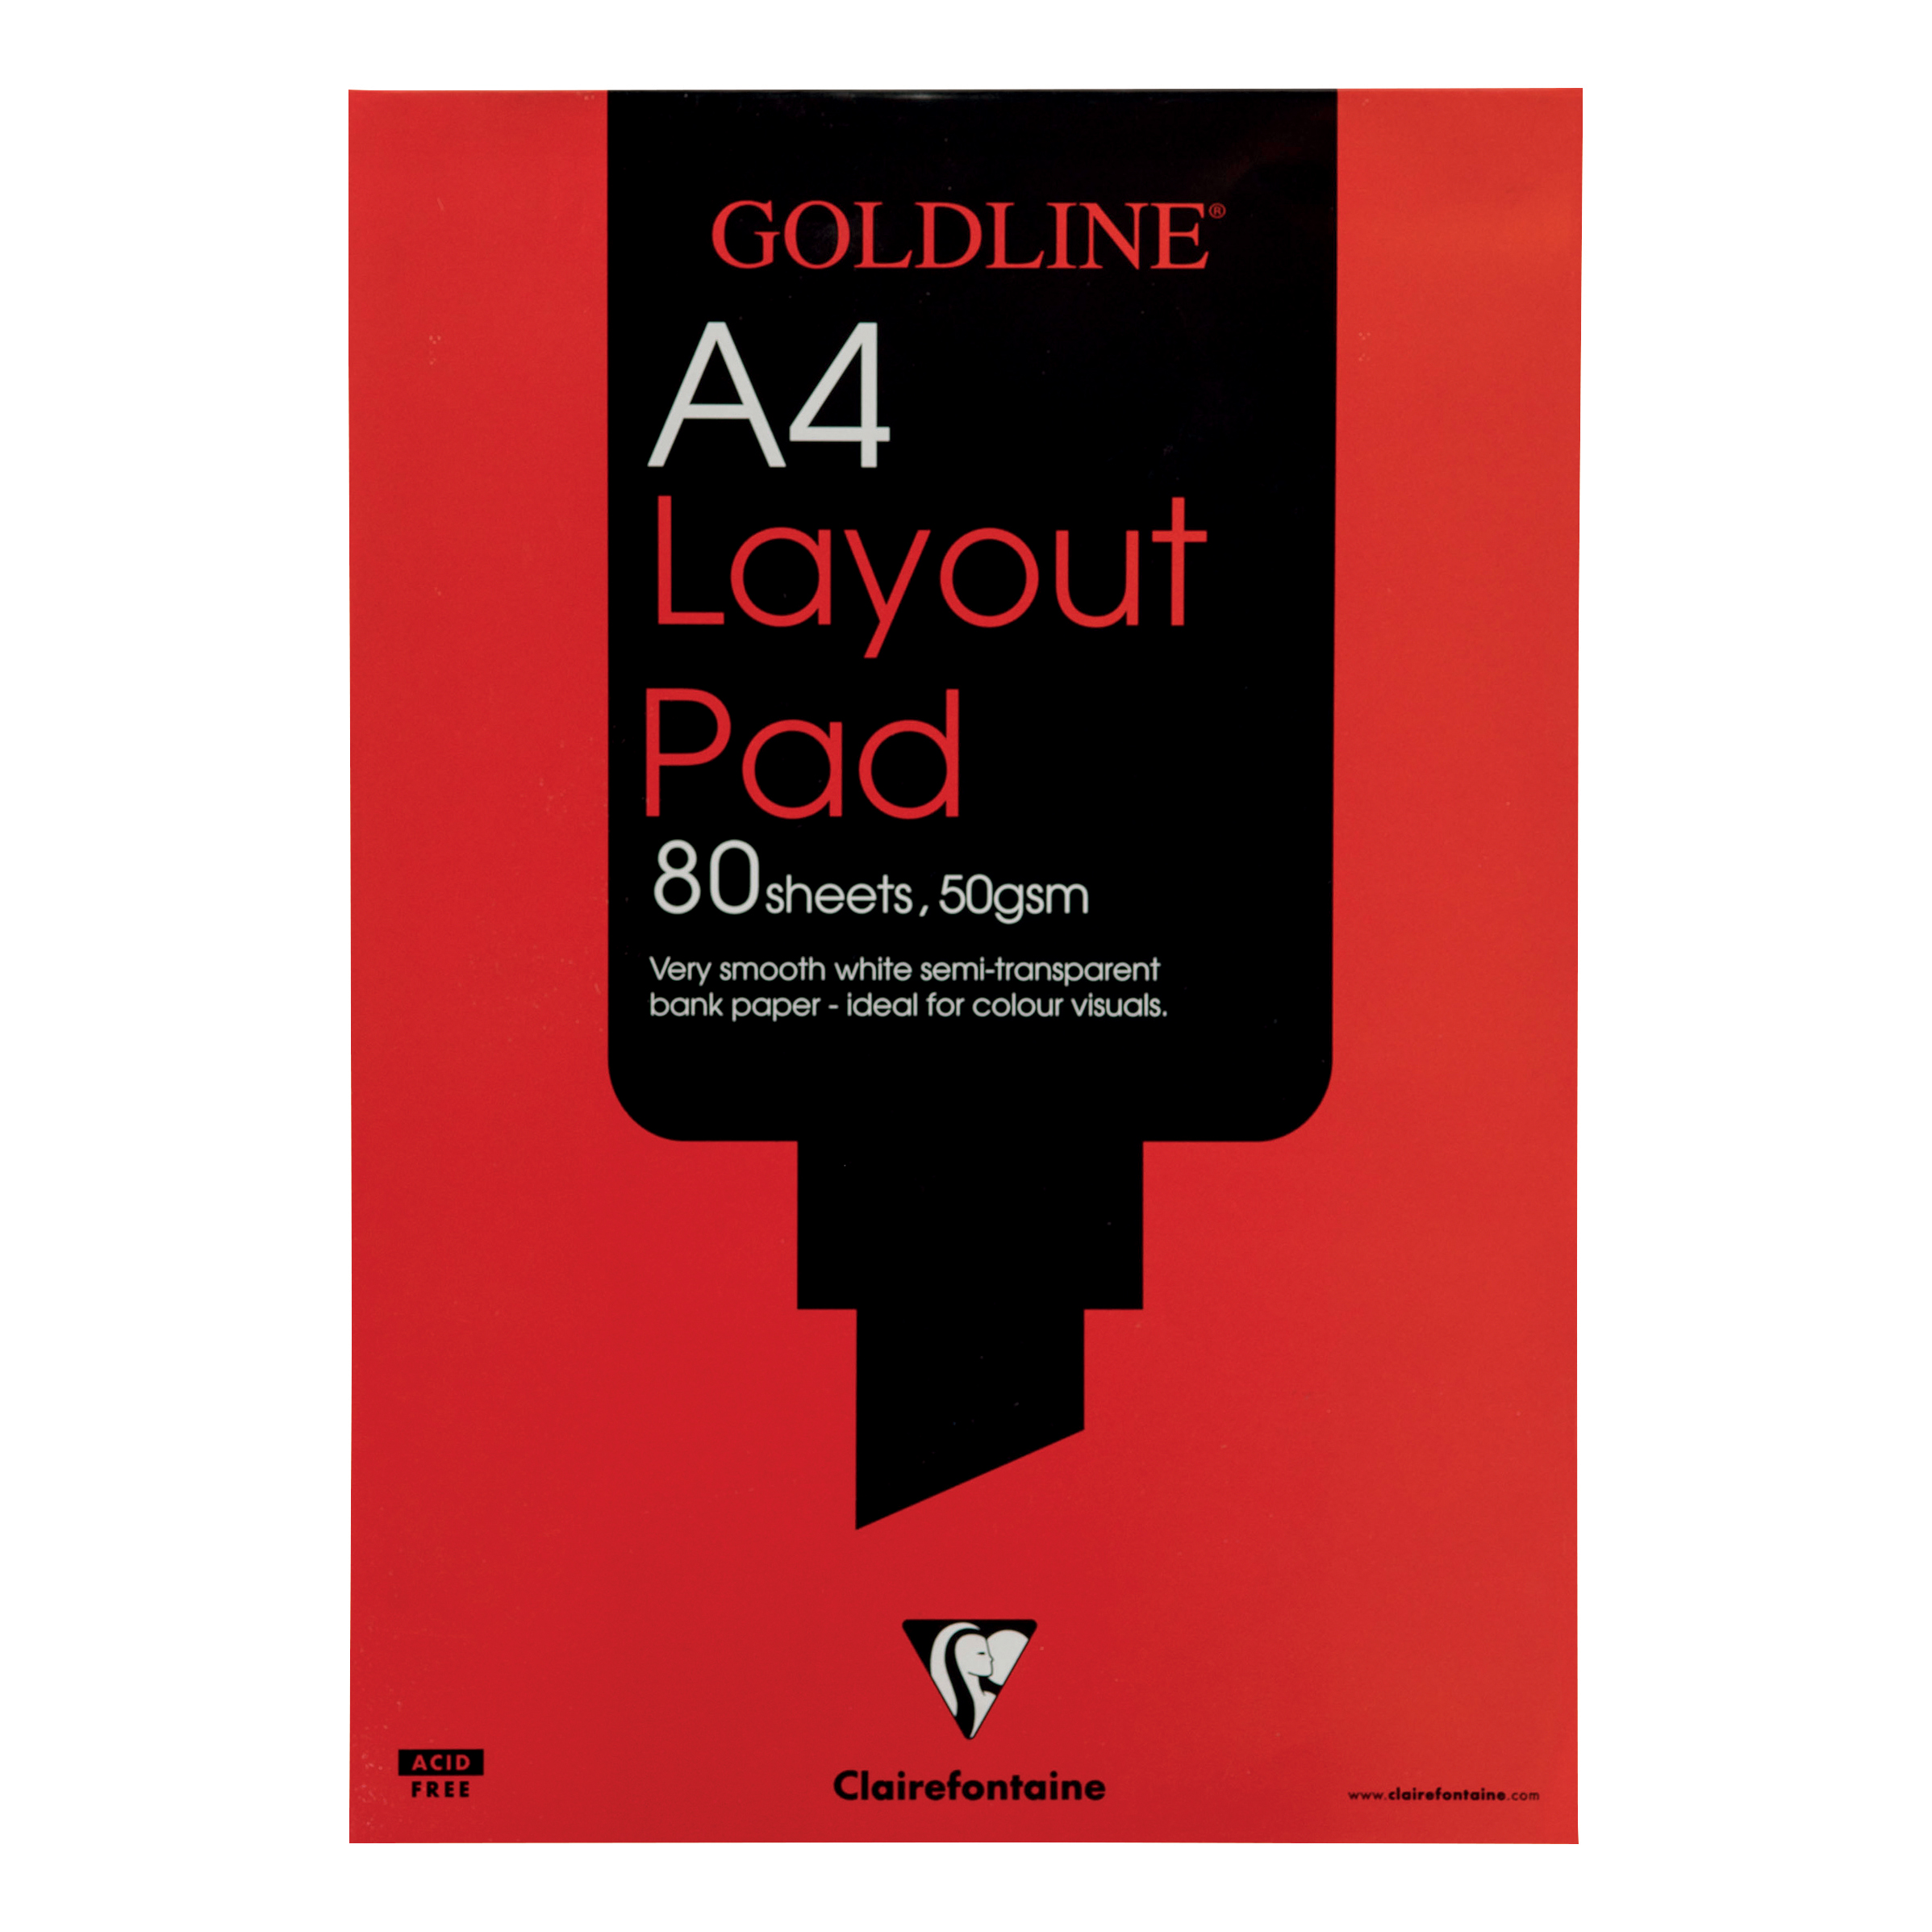 Image for Clairefontaine Goldline A4 White 80 Sheet 50gsm Acid-Free Paper Layout Pad GPL1A4